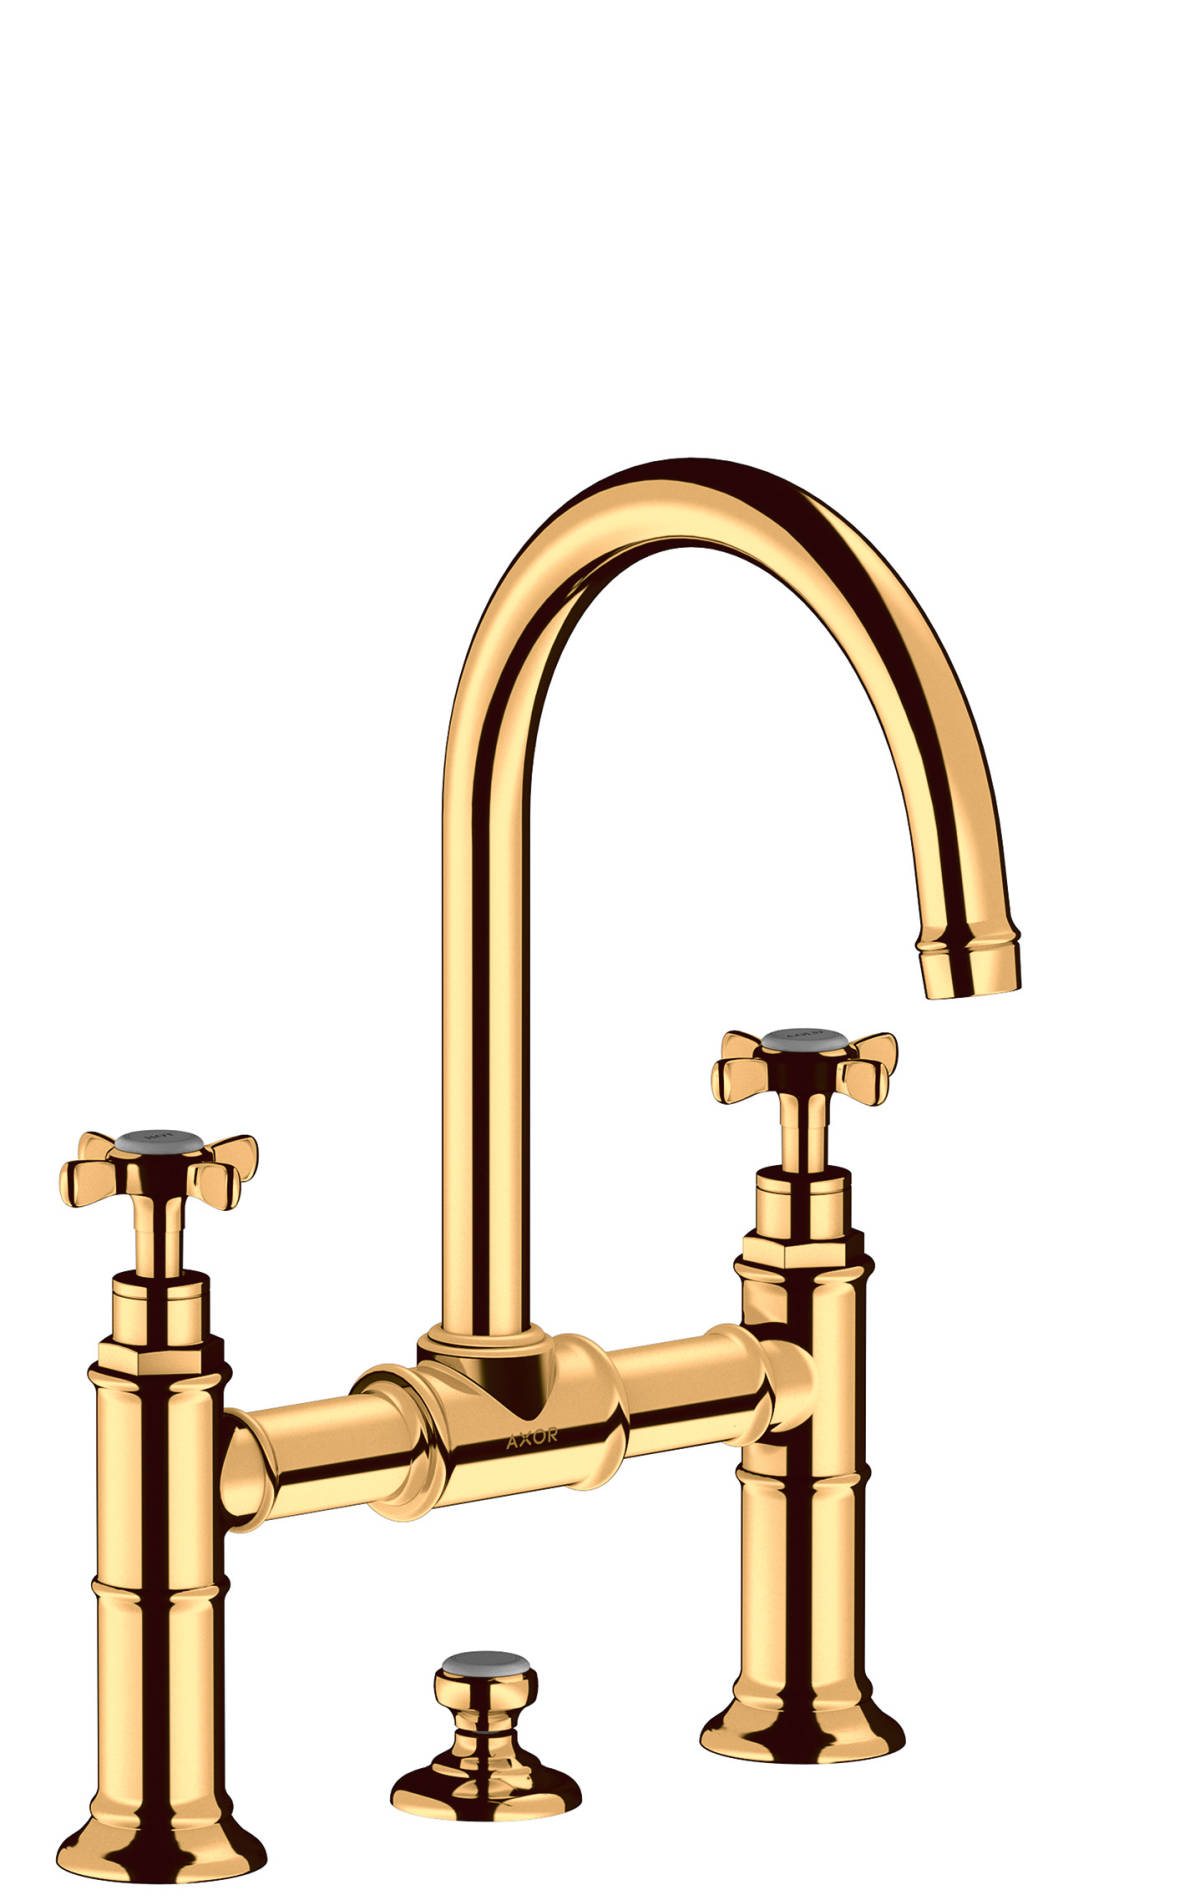 2-handle basin mixer 220 with cross handles and pop-up waste set, Polished Gold Optic, 16510990